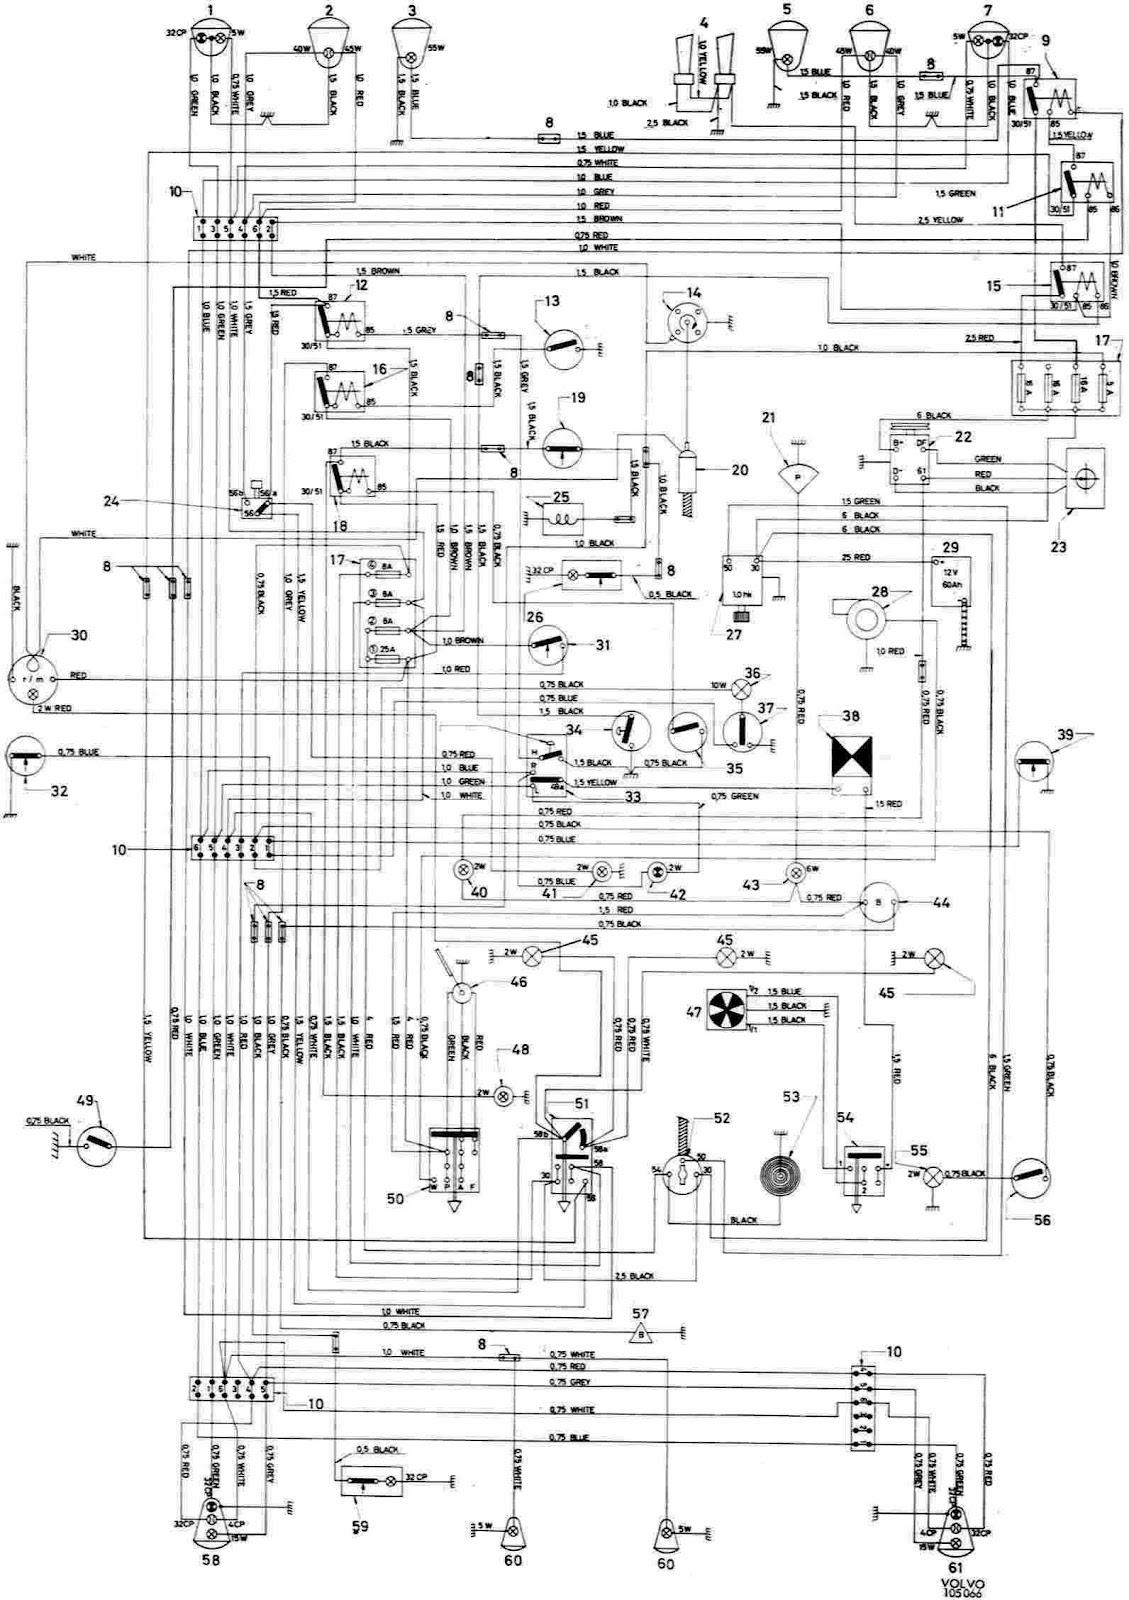 Volvo+123+GT+Complete+Wiring+Diagram hu 613 wiring diagram boat wiring diagram \u2022 wiring diagrams j e46 o2 sensor wiring diagram at mifinder.co